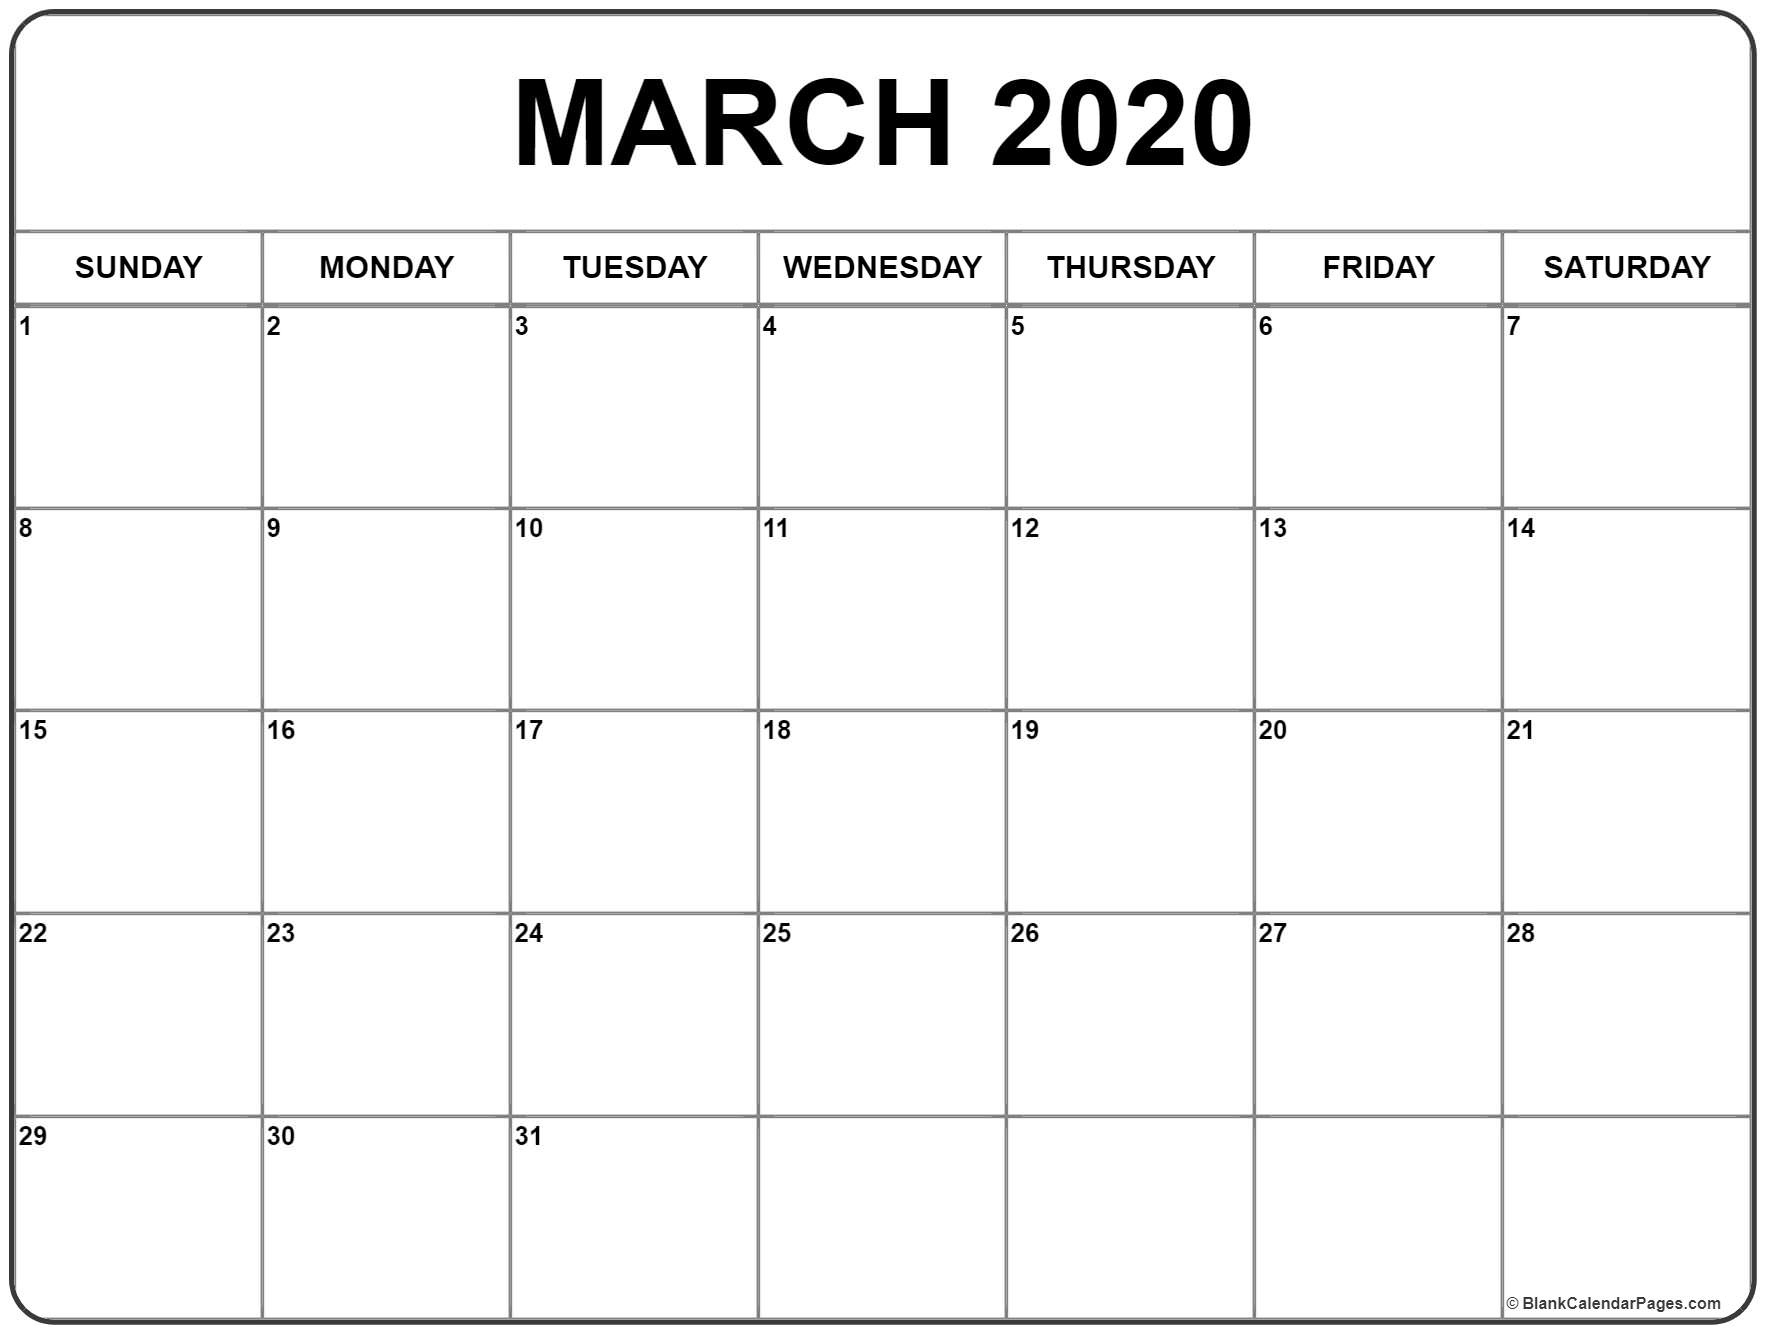 March Calendar Archives » Creative Calendar Ideas intended for Free Printable Calendars 2020 Waterproof